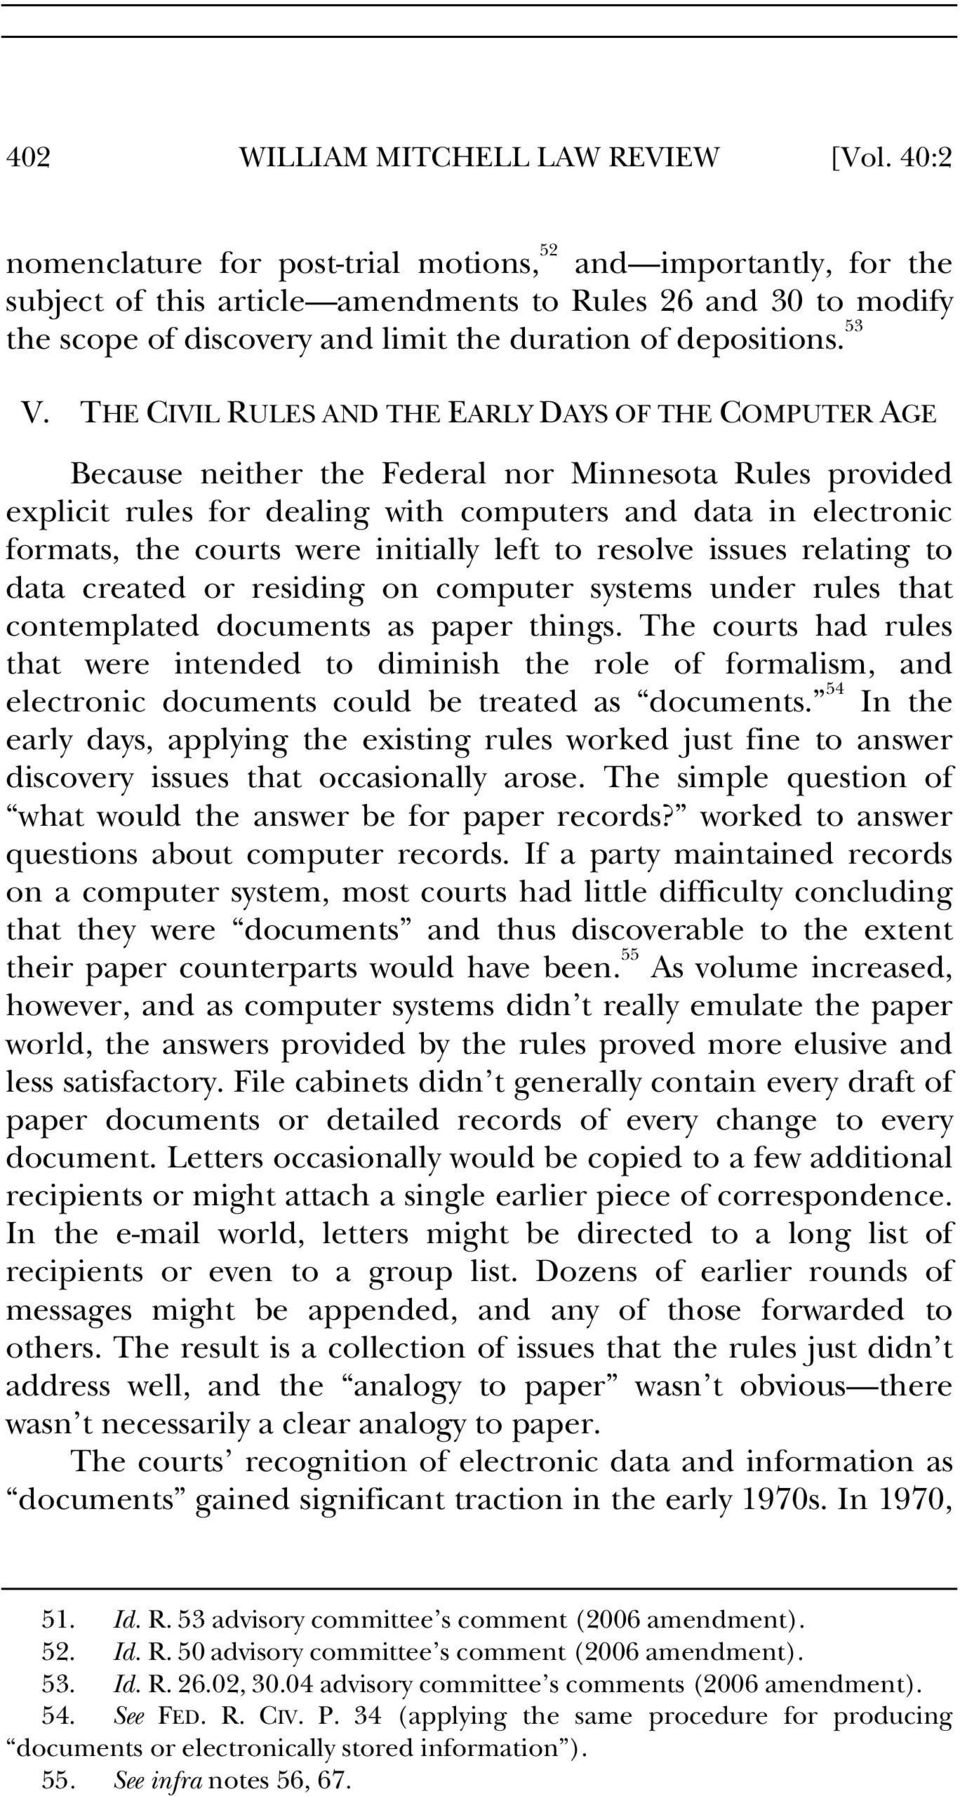 53 V. THE CIVIL RULES AND THE EARLY DAYS OF THE COMPUTER AGE Because neither the Federal nor Minnesota Rules provided explicit rules for dealing with computers and data in electronic formats, the